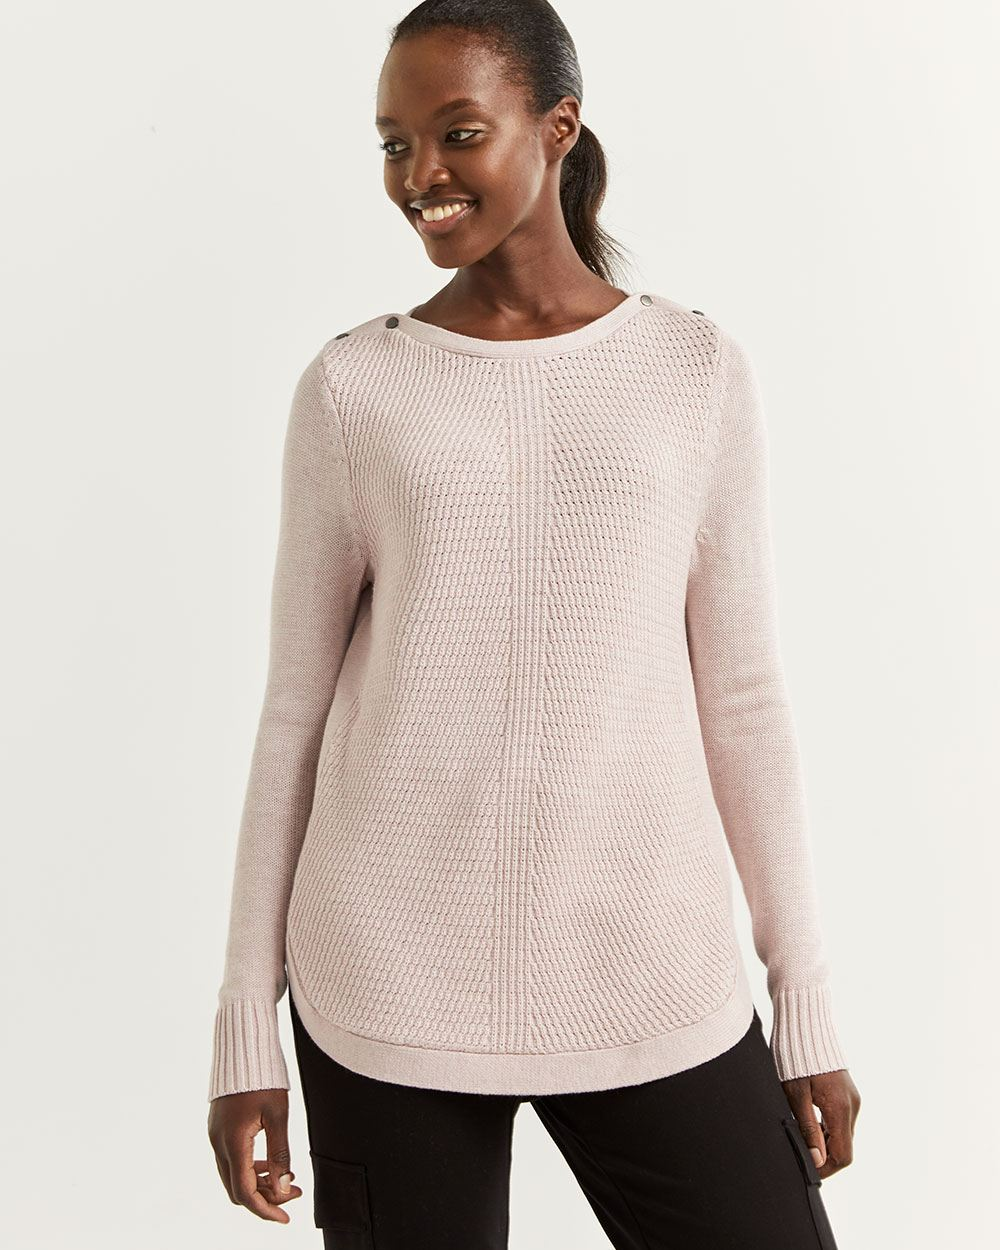 Sweater with Buttons at Shoulders